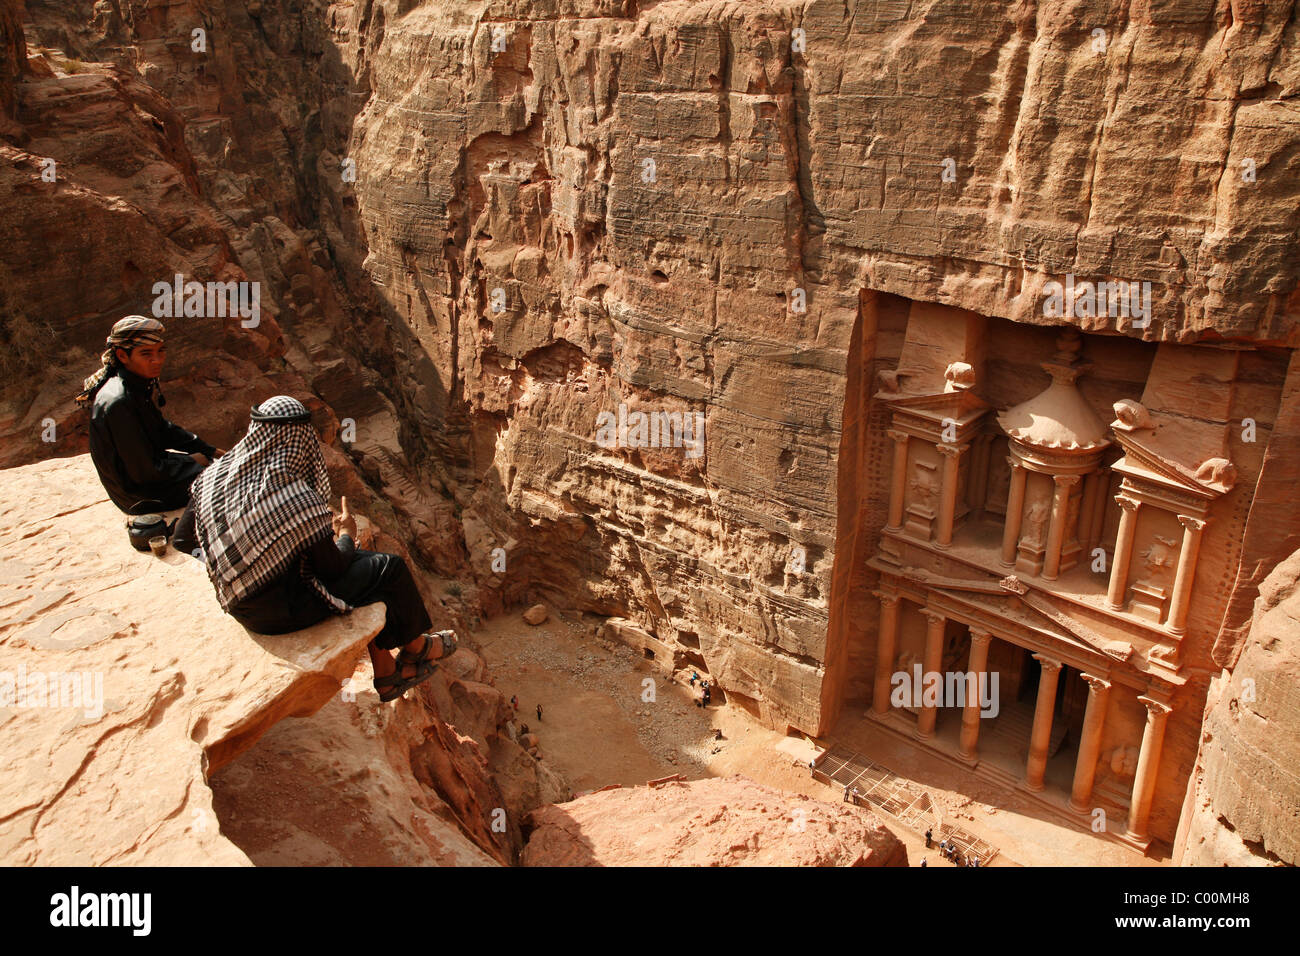 Bedouins sitting on top of a cliff looking down to the Treasury (El Khazneh), Petra, Jordan. - Stock Image